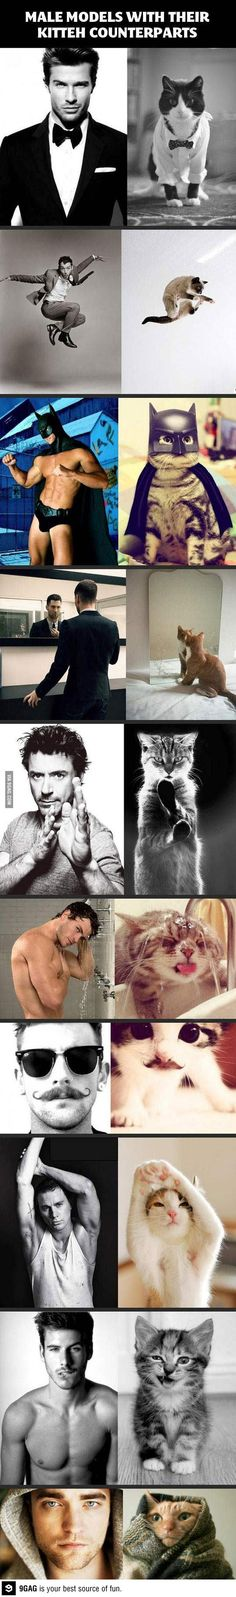 Handsome men and their kitty counterparts